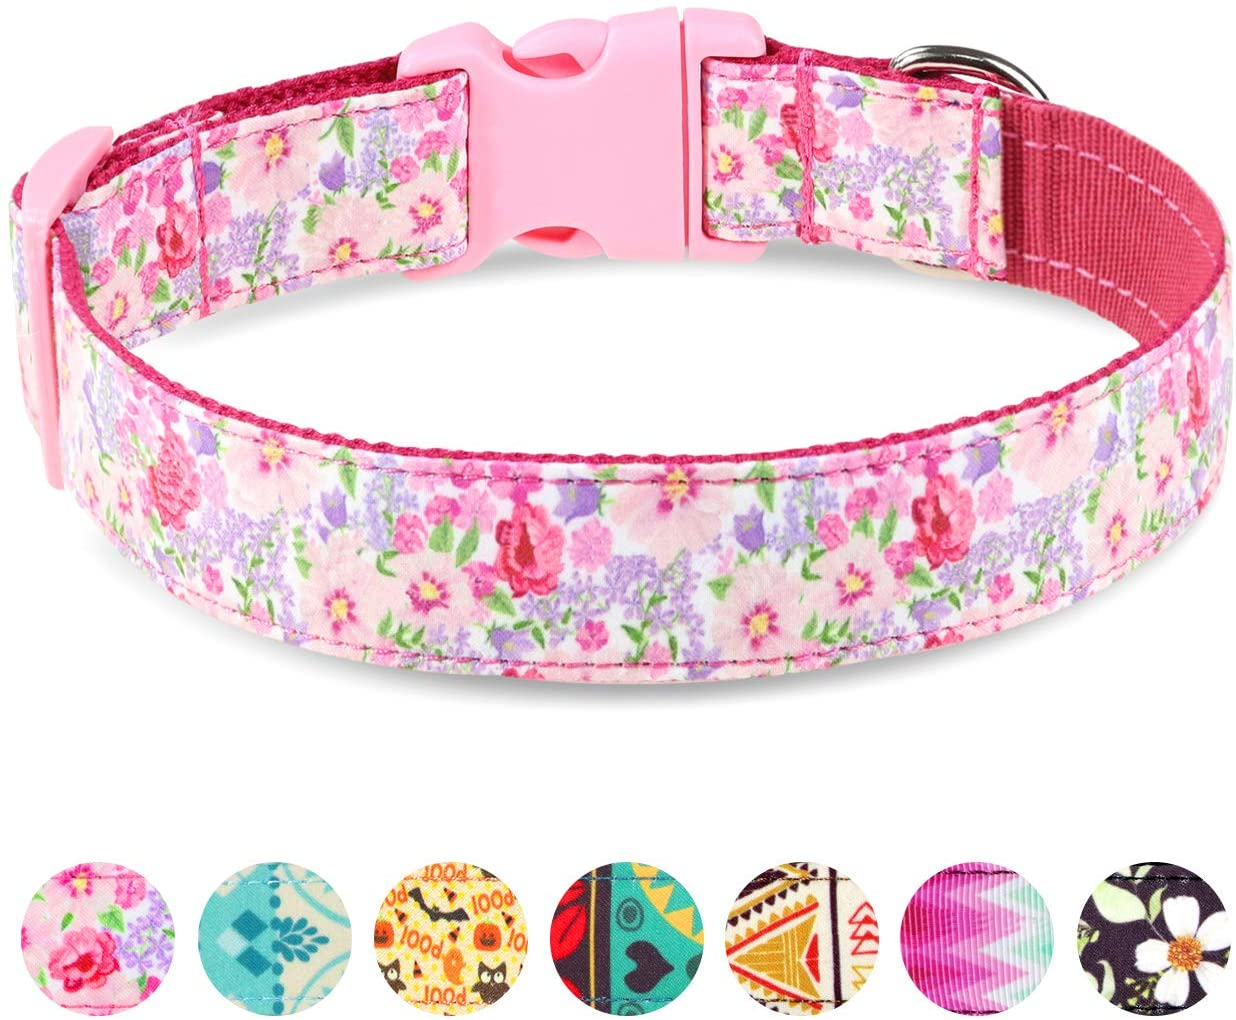 🔥 HOT Sale 🔥 Unique Designer Soft Dog Collar, Western Collars for Puppy Small Medium Large Dogs